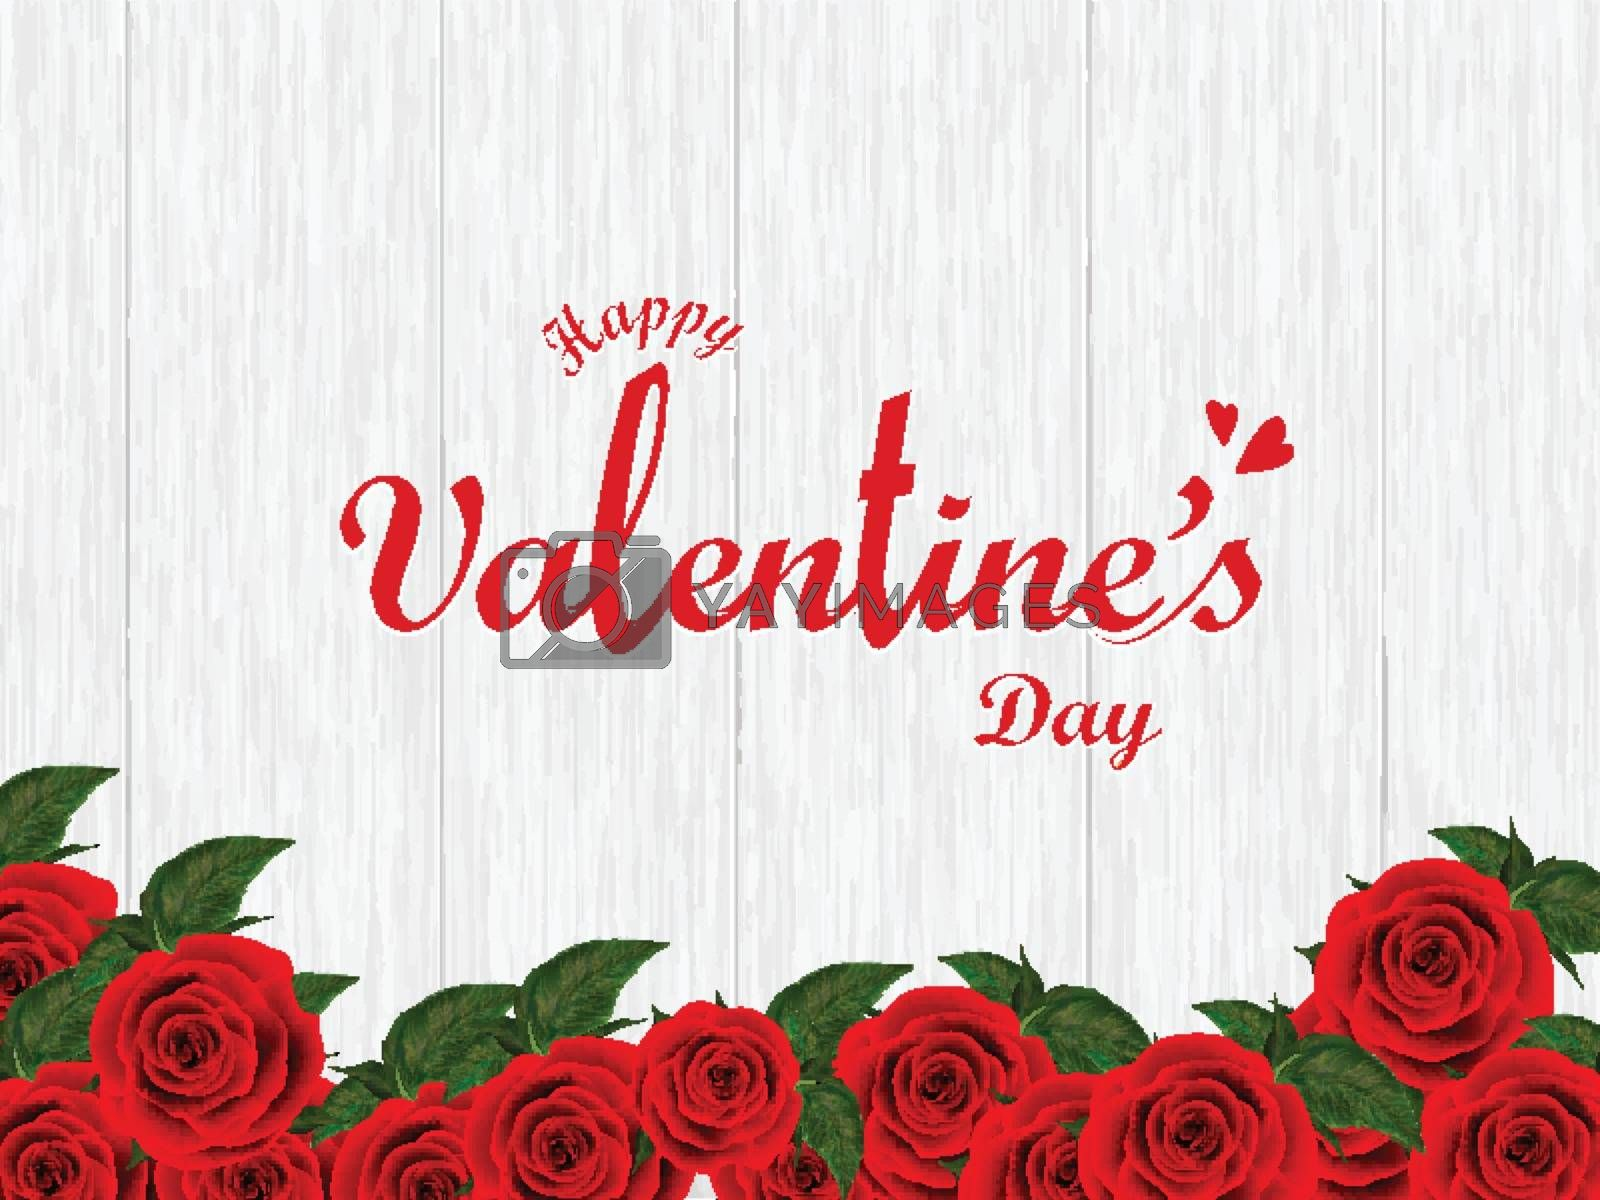 Stylish lettering of valentine's day on wooden texture background decorated with rose flowers can be used as poster or banner design.